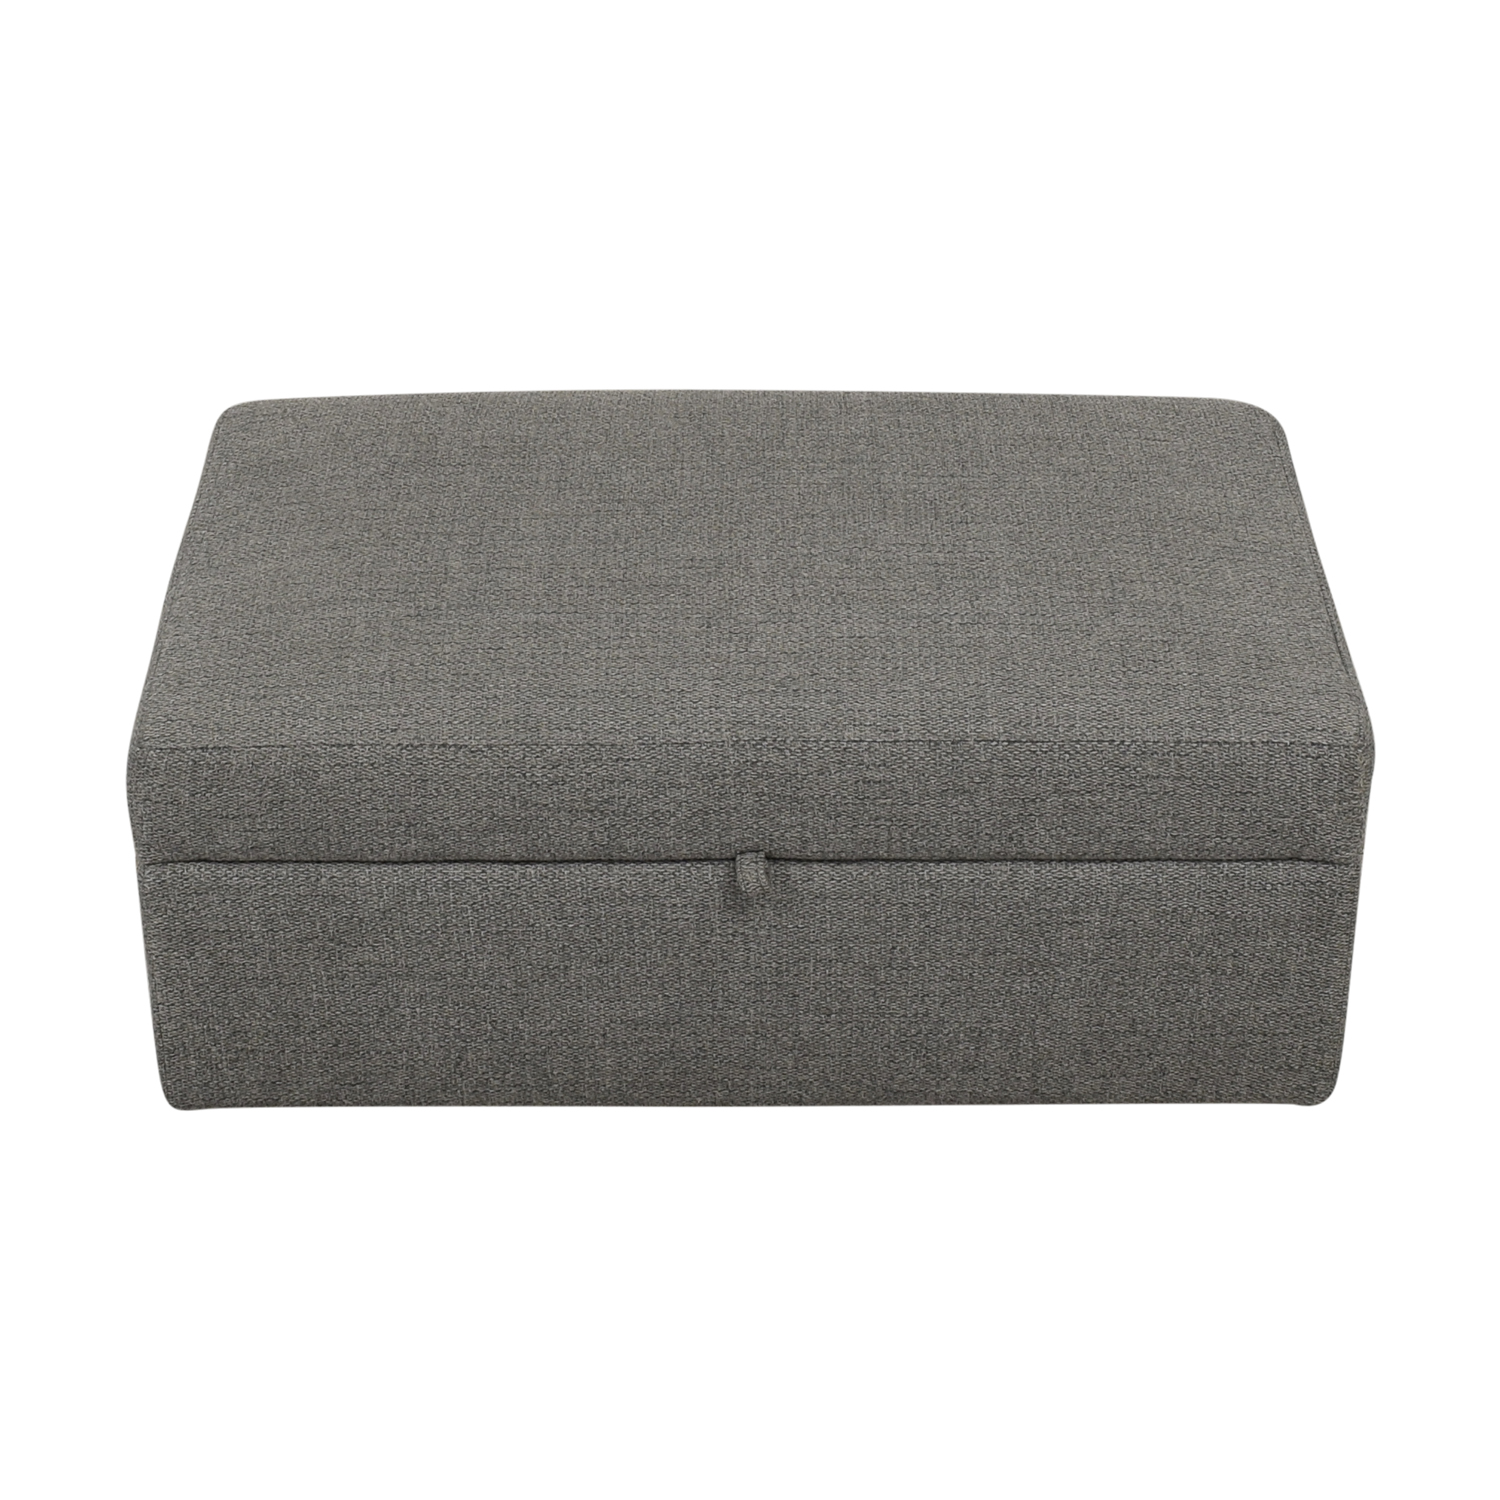 Crate & Barrel Barrett Storage Ottoman with Tray and Casters ma